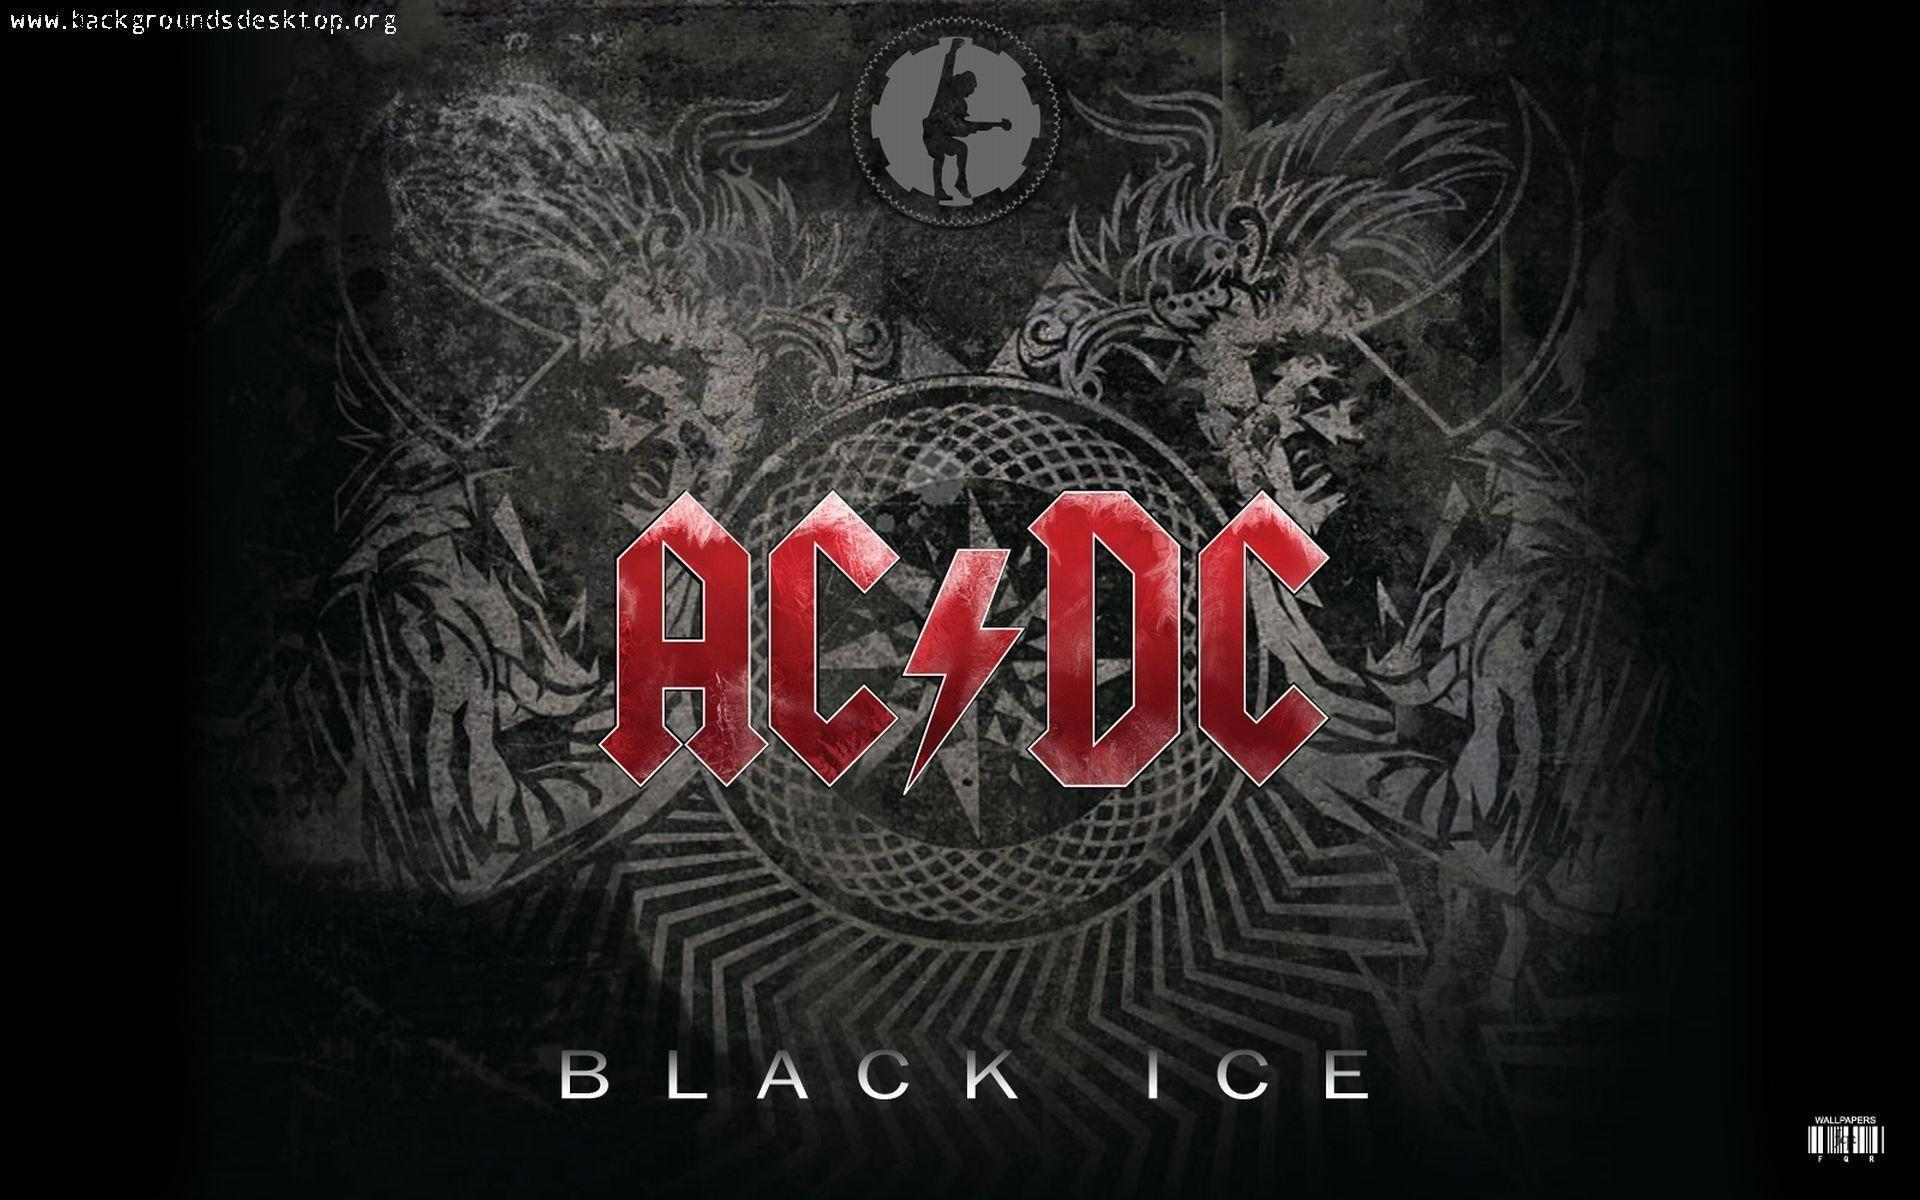 Acdc In Black Wallpapers Desktop Backgrounds Hd Best Backgrounds